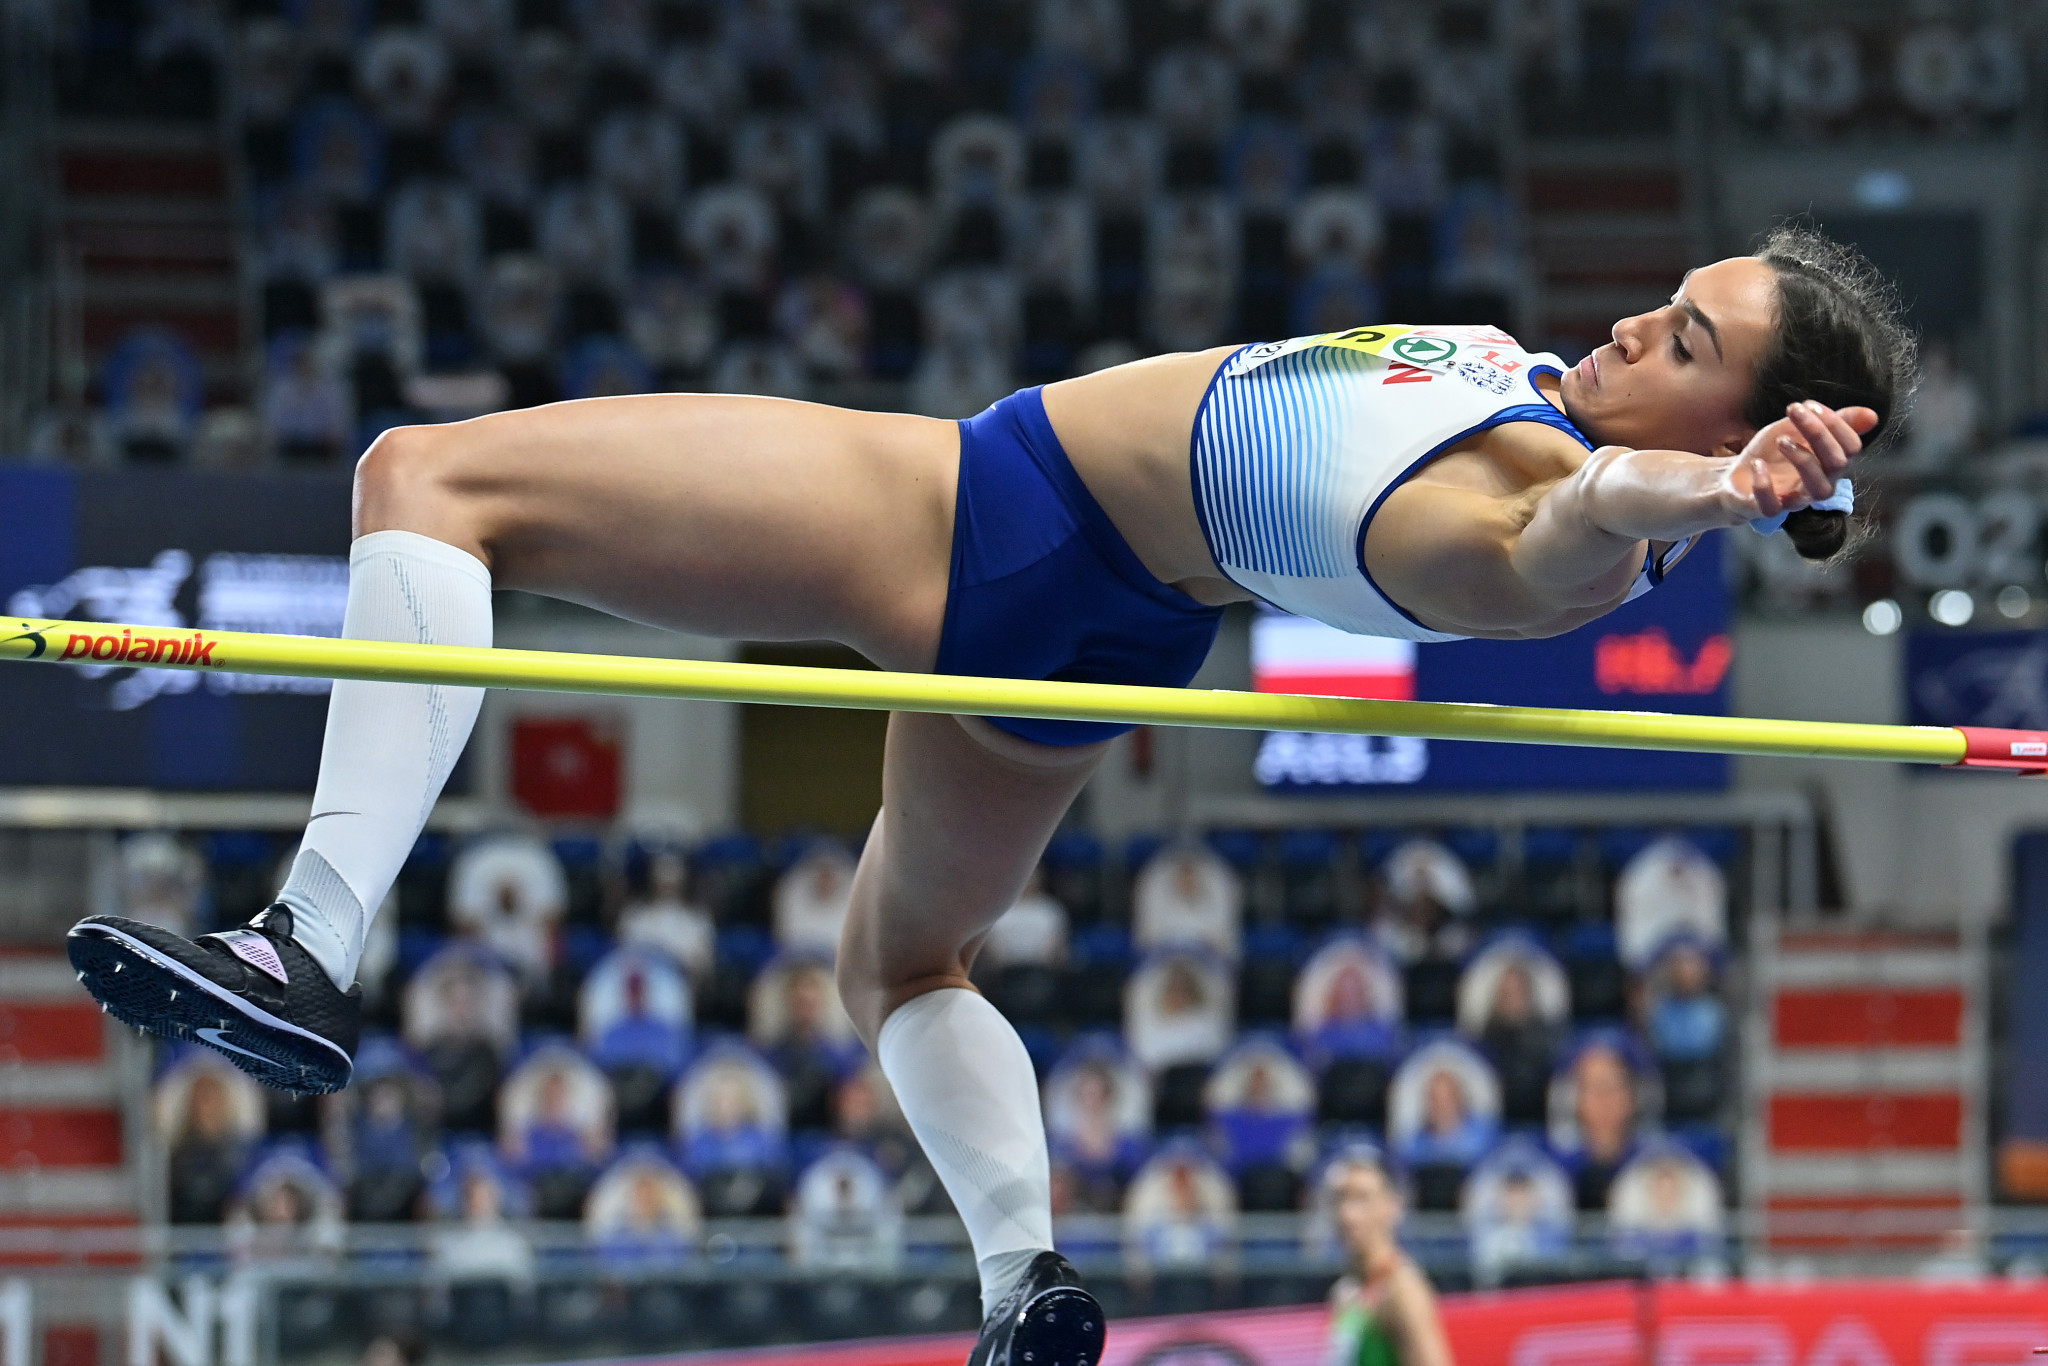 Roe and Mills lead way at World Athletics Combined Events Challenge leg in Lana